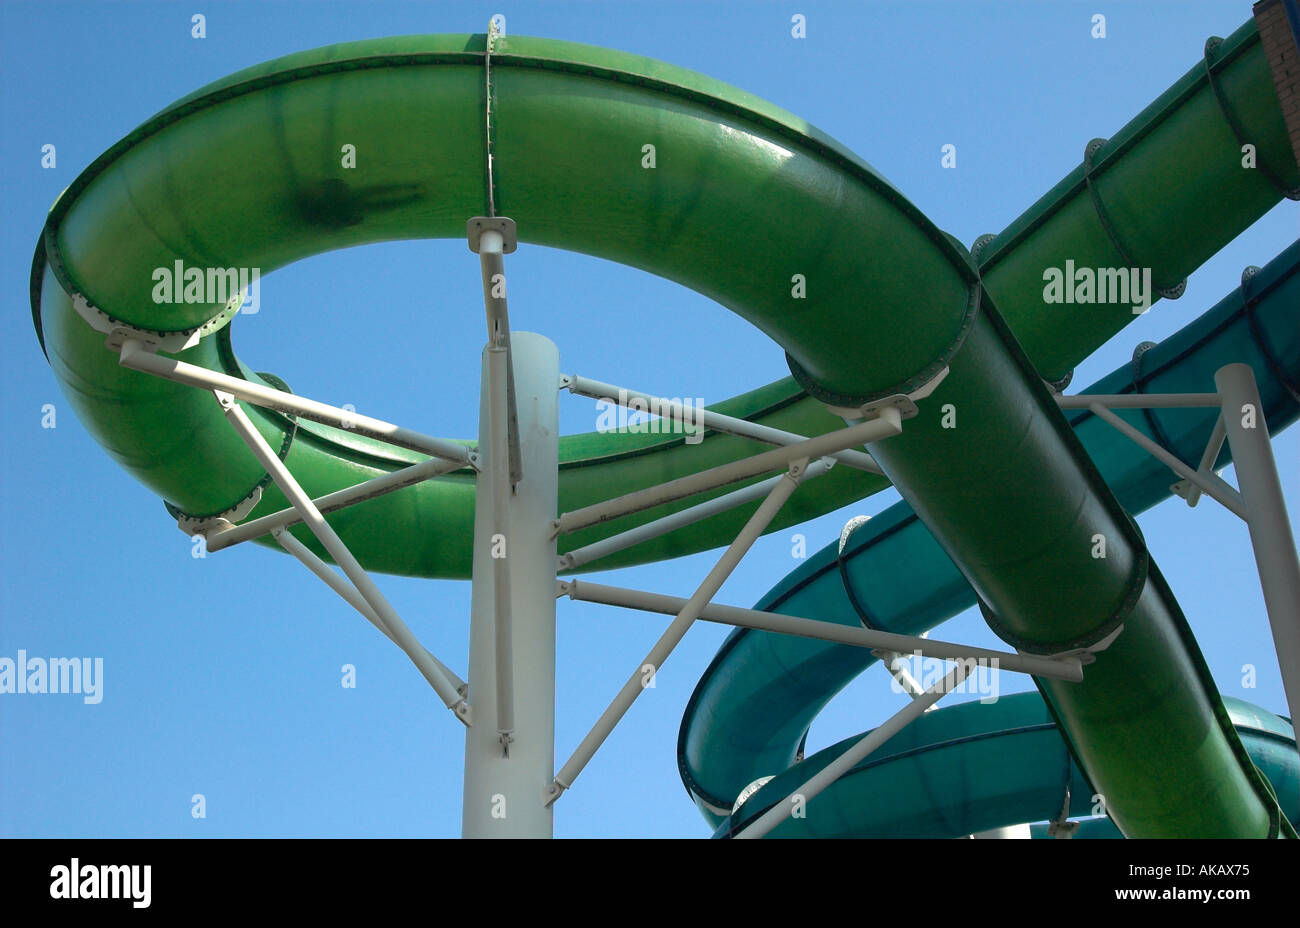 Water Slide At Colchester Leisure World Essex Stock Photo Royalty Free Image 4878964 Alamy